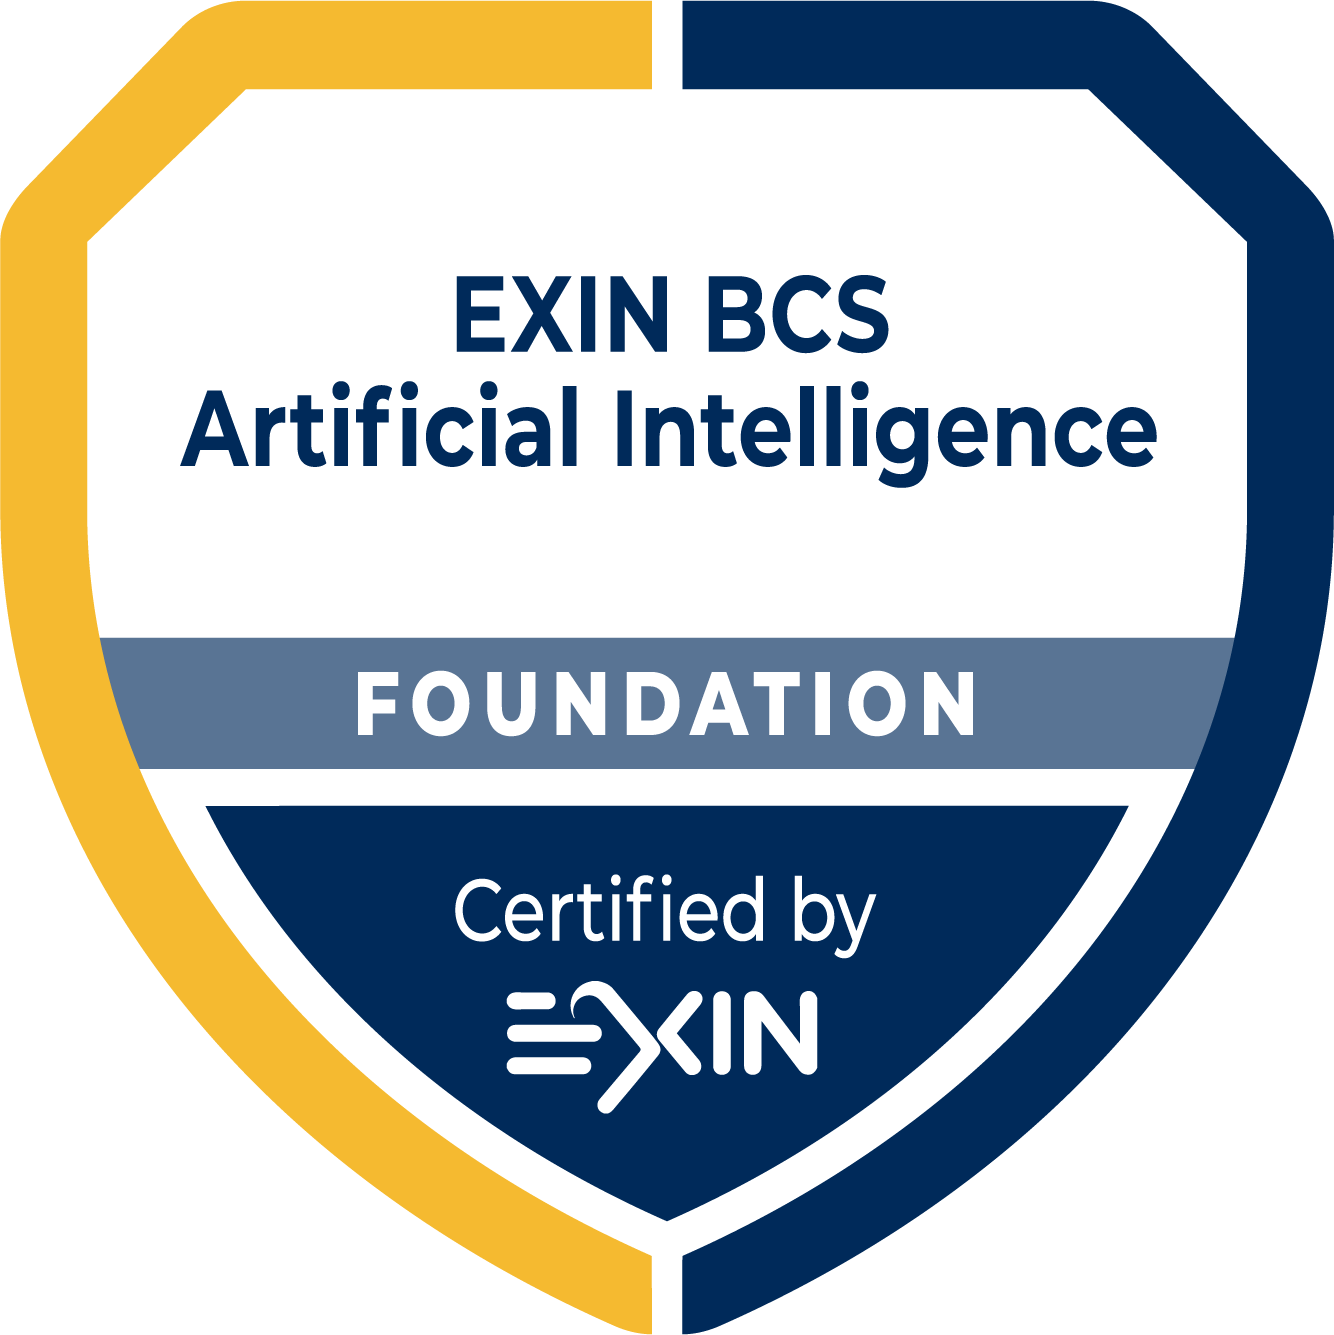 EXIN BCS Artificial Intelligence Foundation